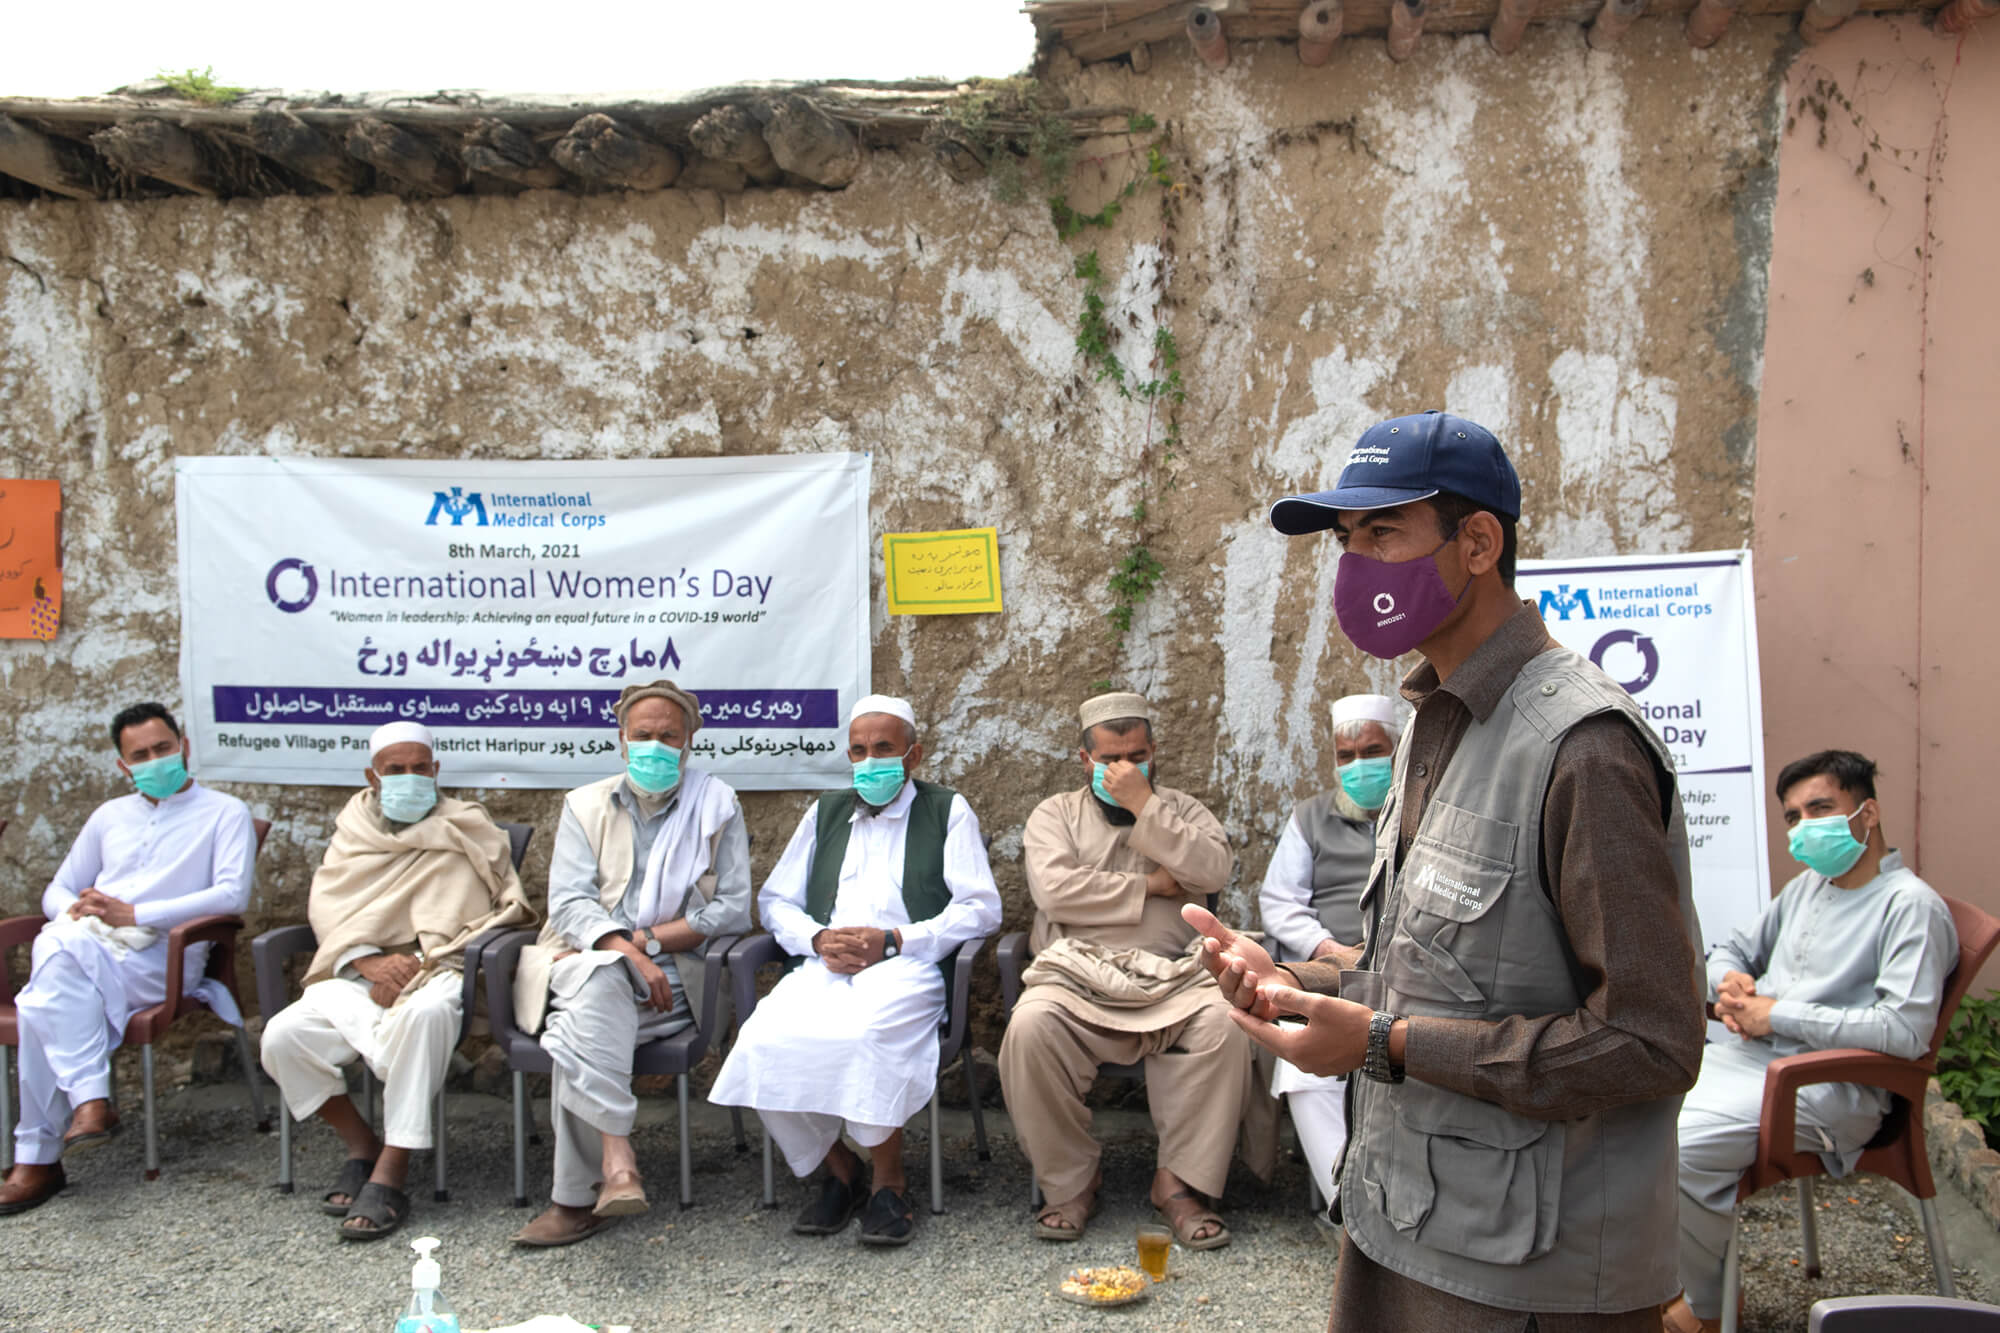 Events within the male refugee community in Haripur district, Pakistan, helped raise awareness about women's rights on International Women's Day.